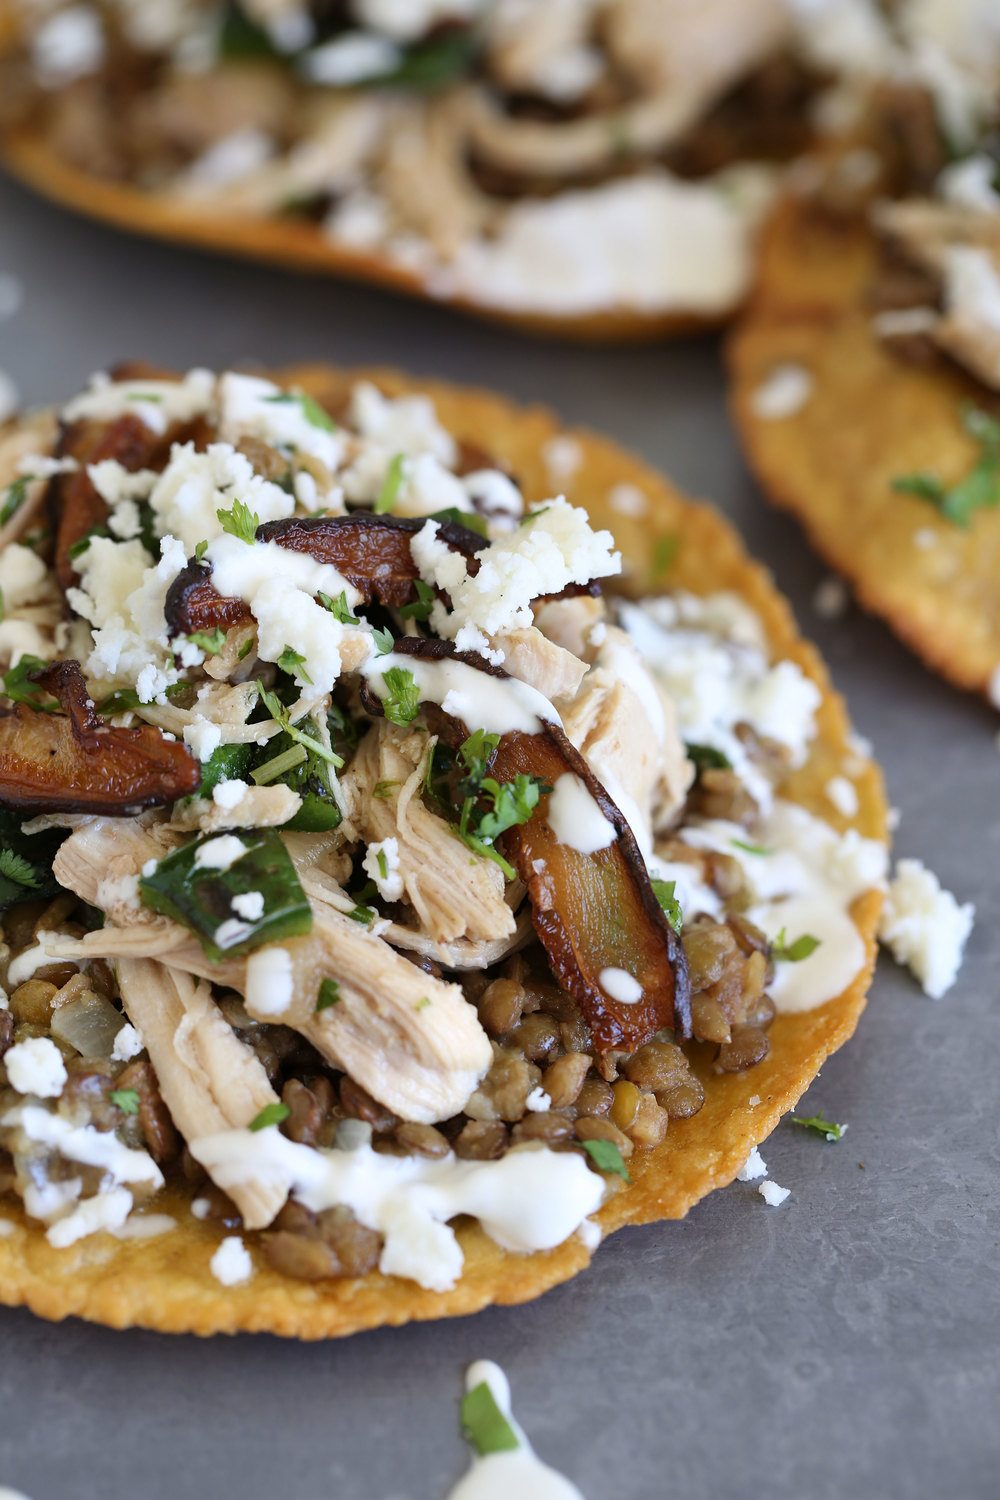 braised chicken tostada with refried lentils